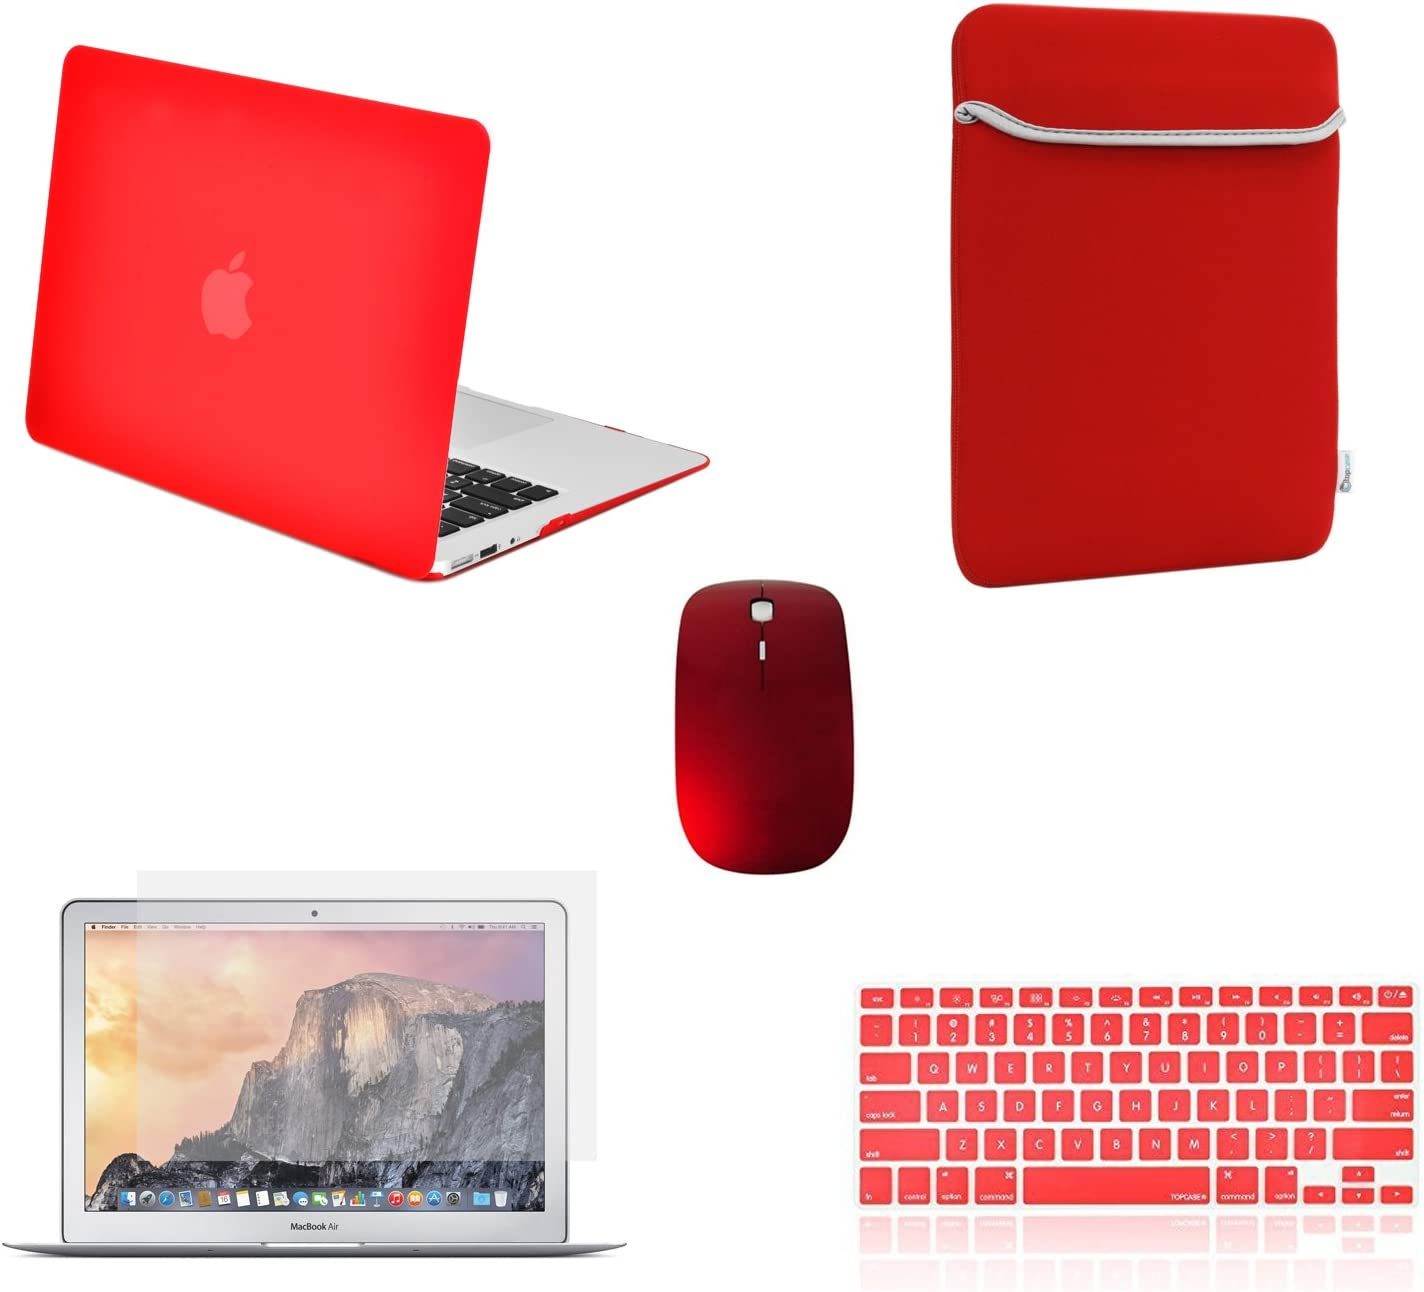 "TOP CASE - 5 in 1 Omni Bundle Rubberized Hard Case, Keyboard Cover, Screen Protector, Sleeve, Mouse Compatible MacBook Air 13"" A1369 & A1466 (Older Version, Release 2010-2017) - Red"